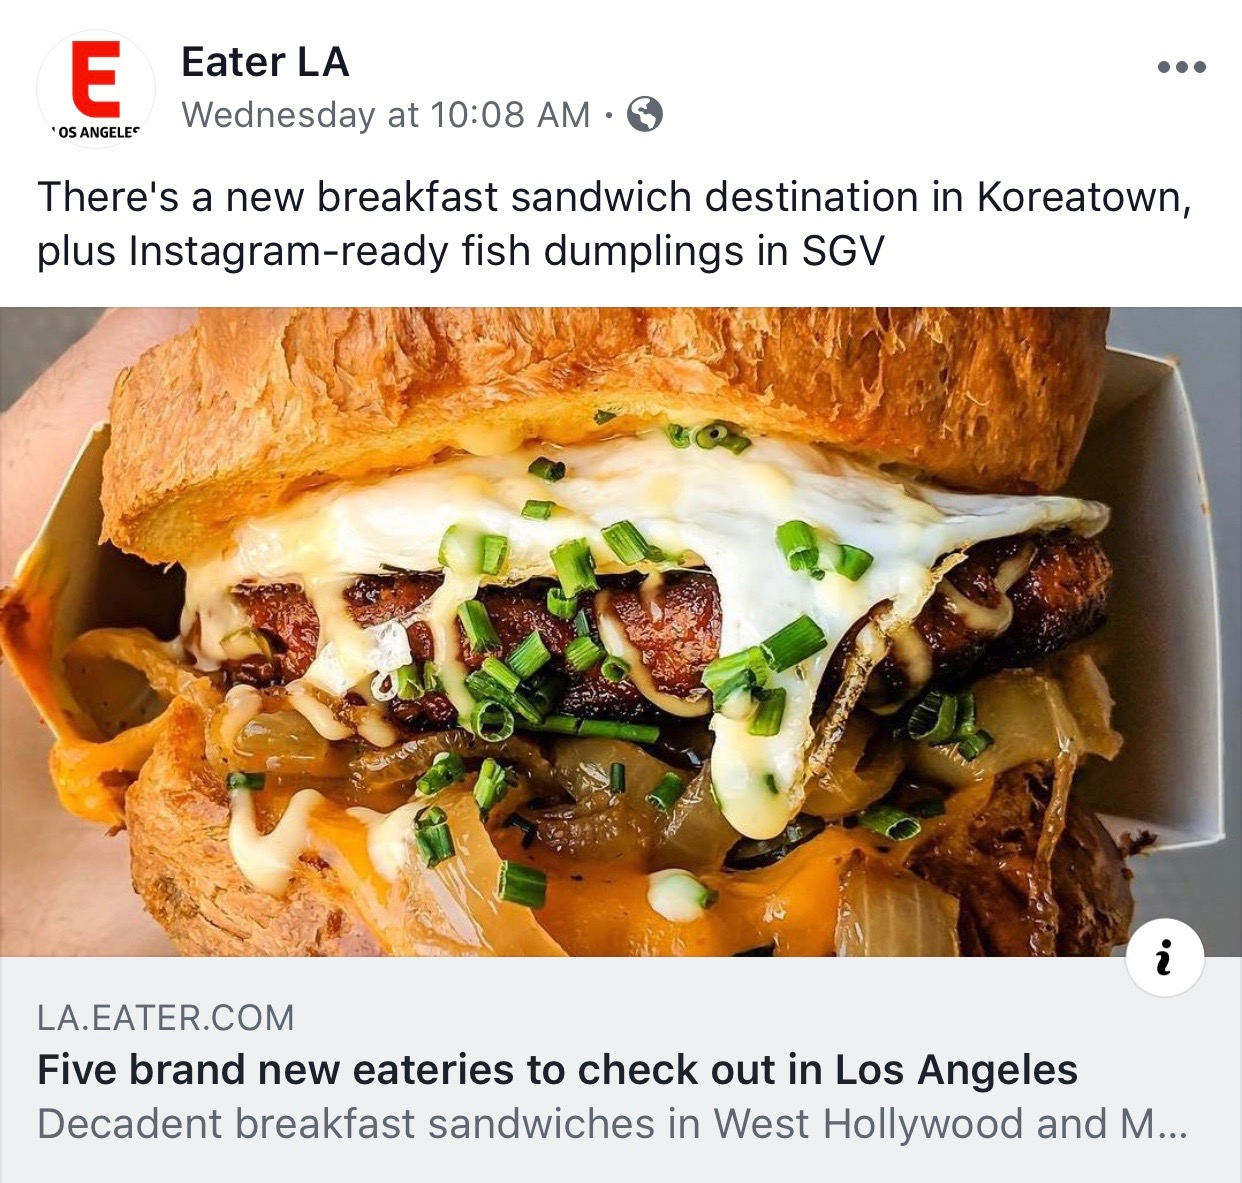 EATER LA  - NOTEWORTHY RESTAURANT OPENINGS THROUGHOUT LOS ANGELES